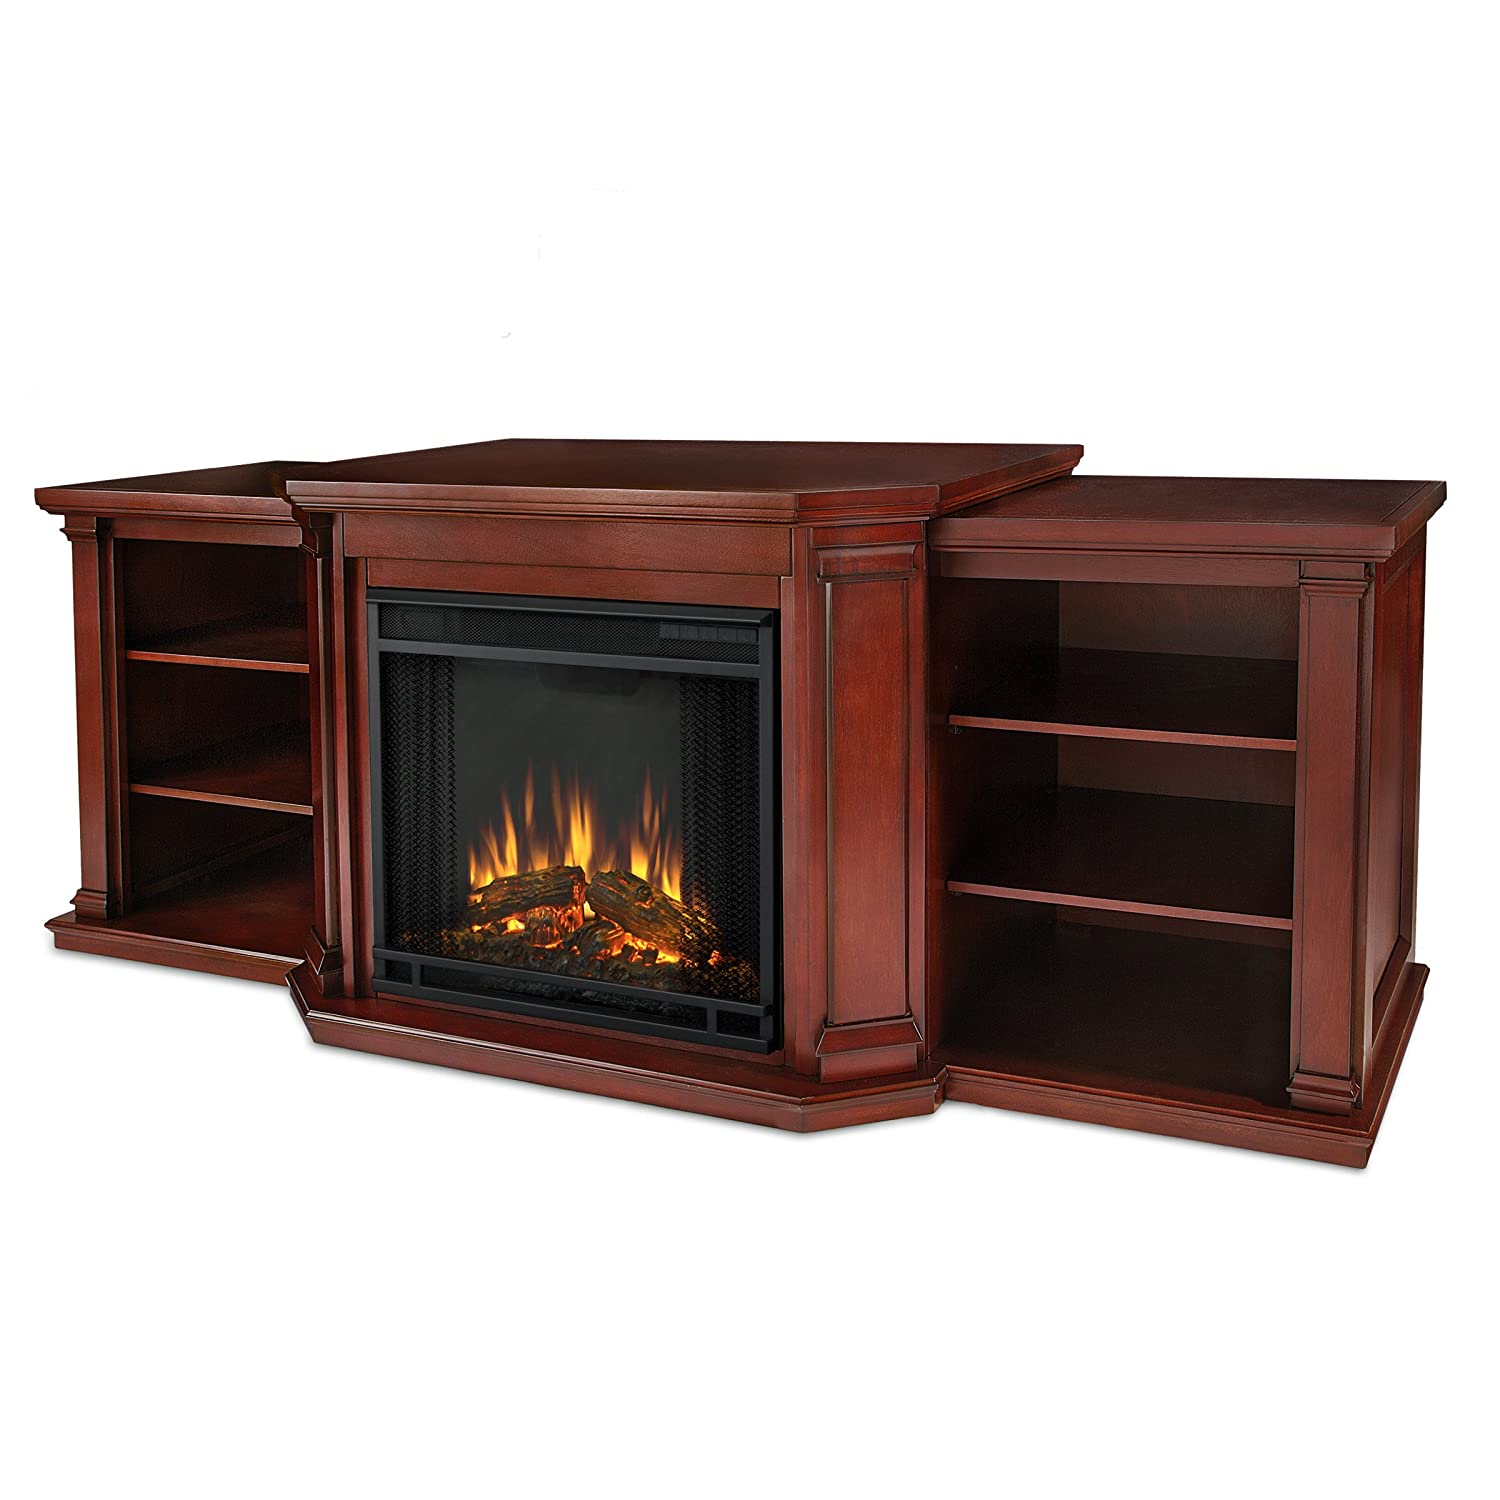 Real Flame Valmont Entertainment Electric Fireplace in Dark Mahogany Finish